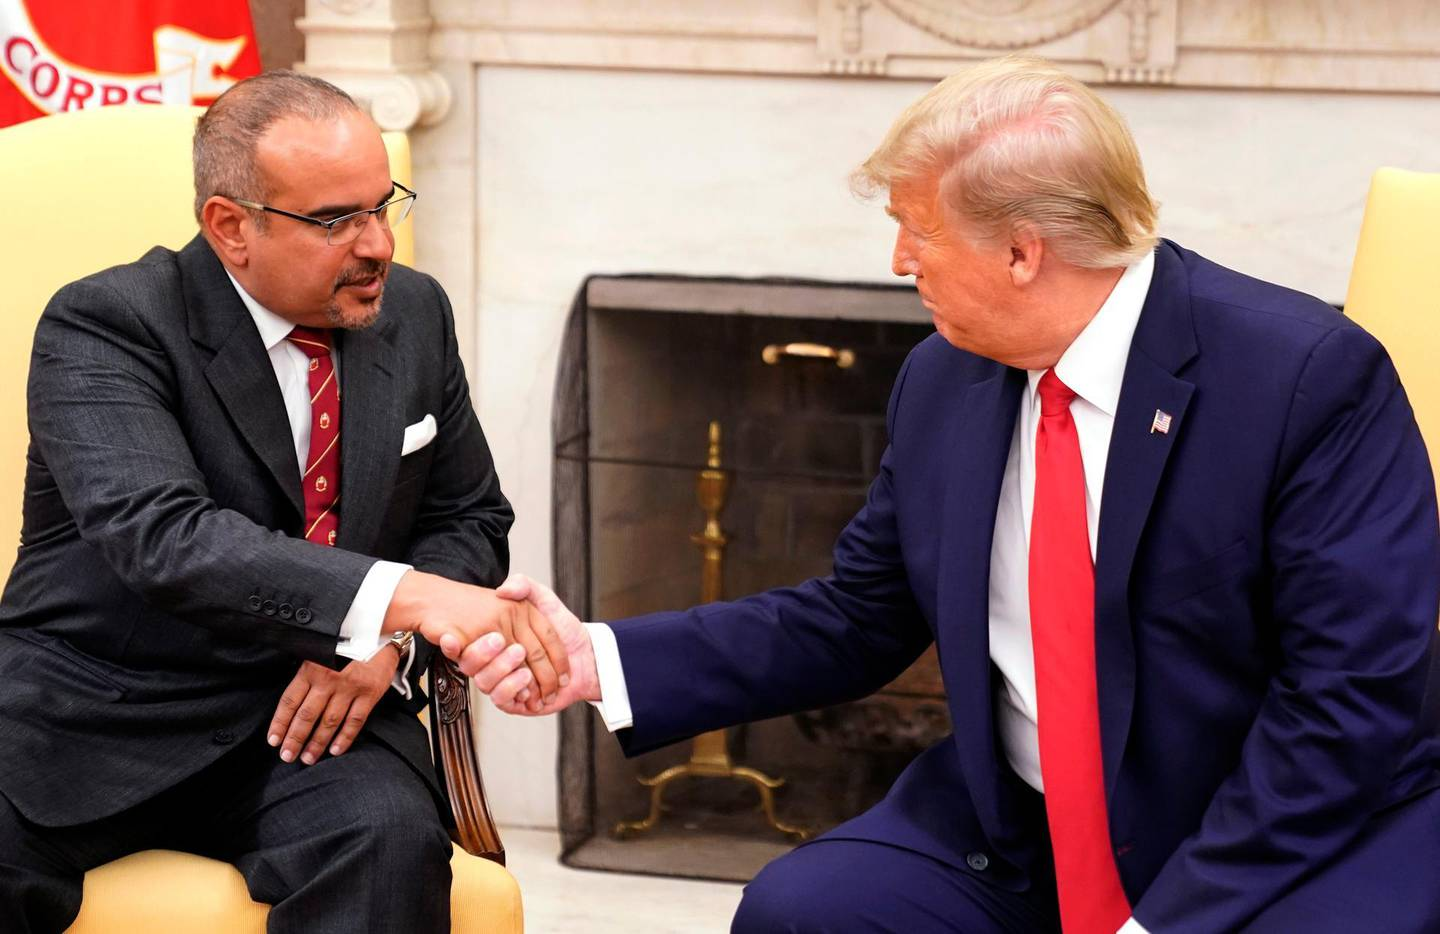 epa07847596 US President Donald J. Trump (R) shakes hands with His Royal Highness Prince Salman bin Hamad Al-Khalifa, Crown Prince, Deputy Supreme Commander, and First Deputy Prime Minister of the Kingdom of Bahrain at the White House, in Washington, DC, USA, 16 September 2019.  EPA/Chris Kleponis / POOL